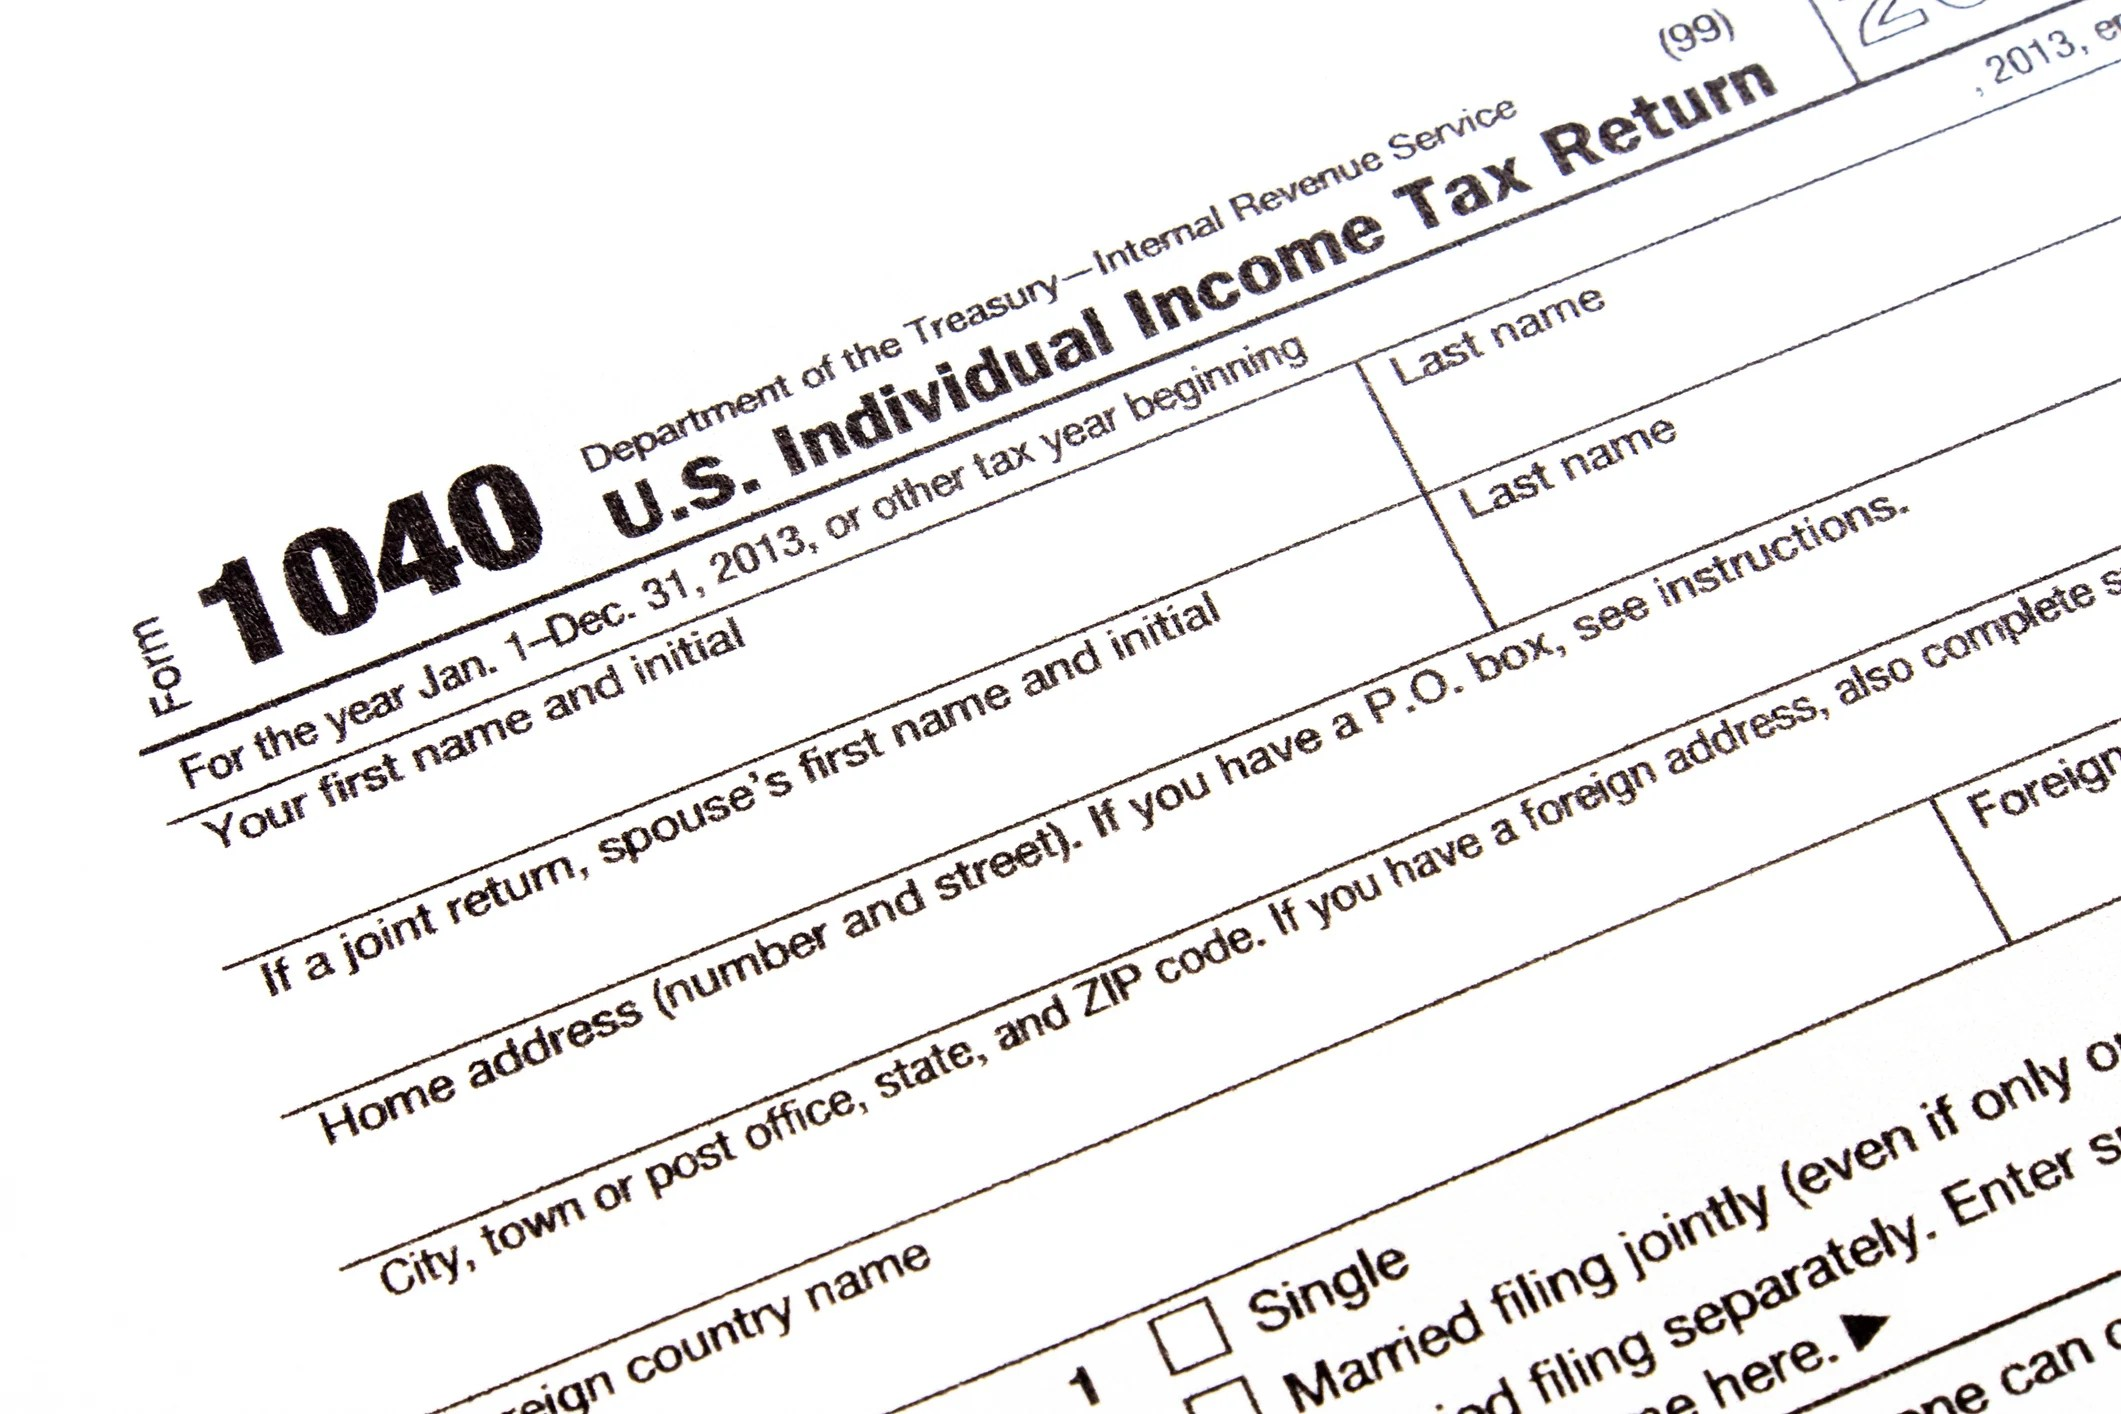 5 Tax Deductions That Could Save You Big Bucks in 2017